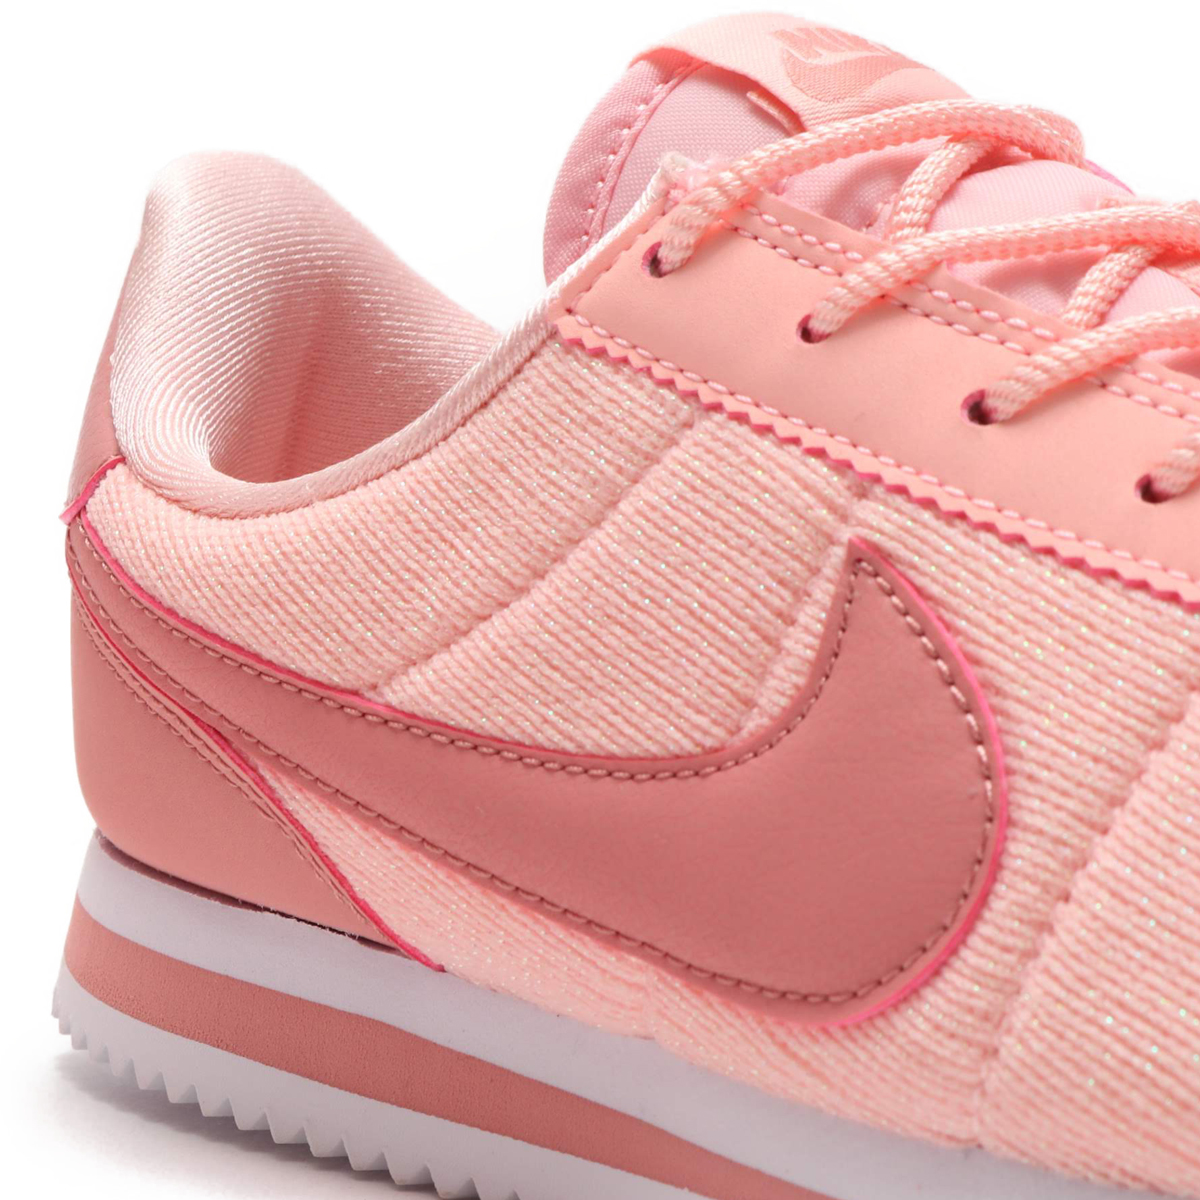 official photos 2a498 93073 NIKE CORTEZ BASIC TXT SE (GS) (ナイキコルテッツベーシックテキスタイル SE GS) STORM PINK RUST  PINK-WHITE 18FA-S